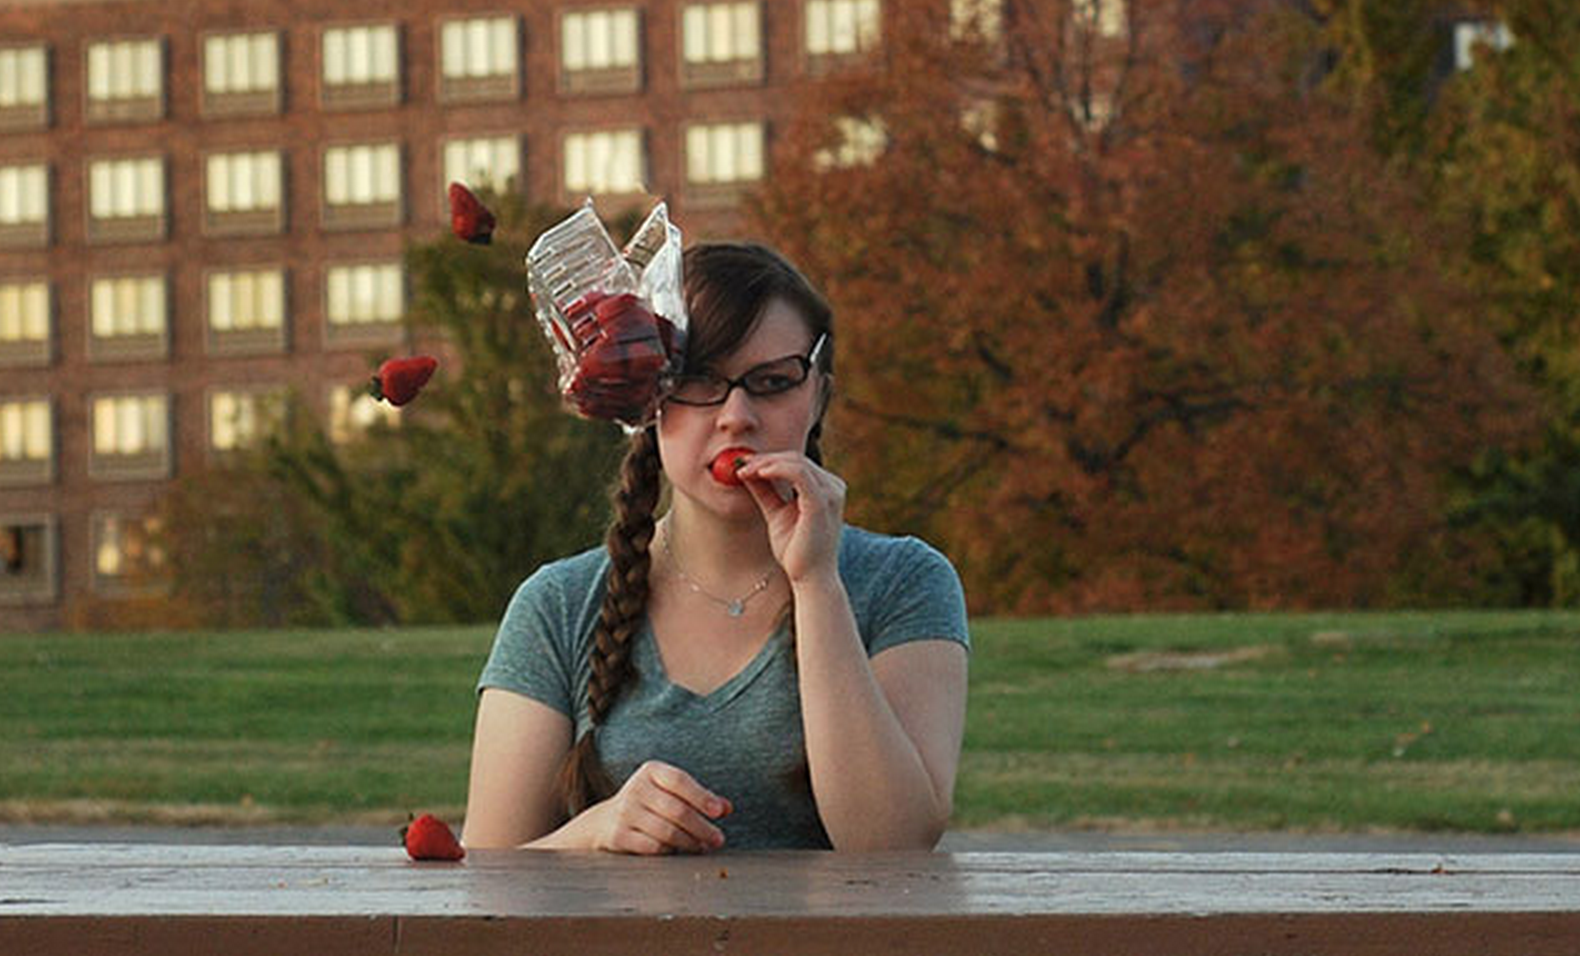 A Photographer has gone viral with photos of random objects being thrown at her head.